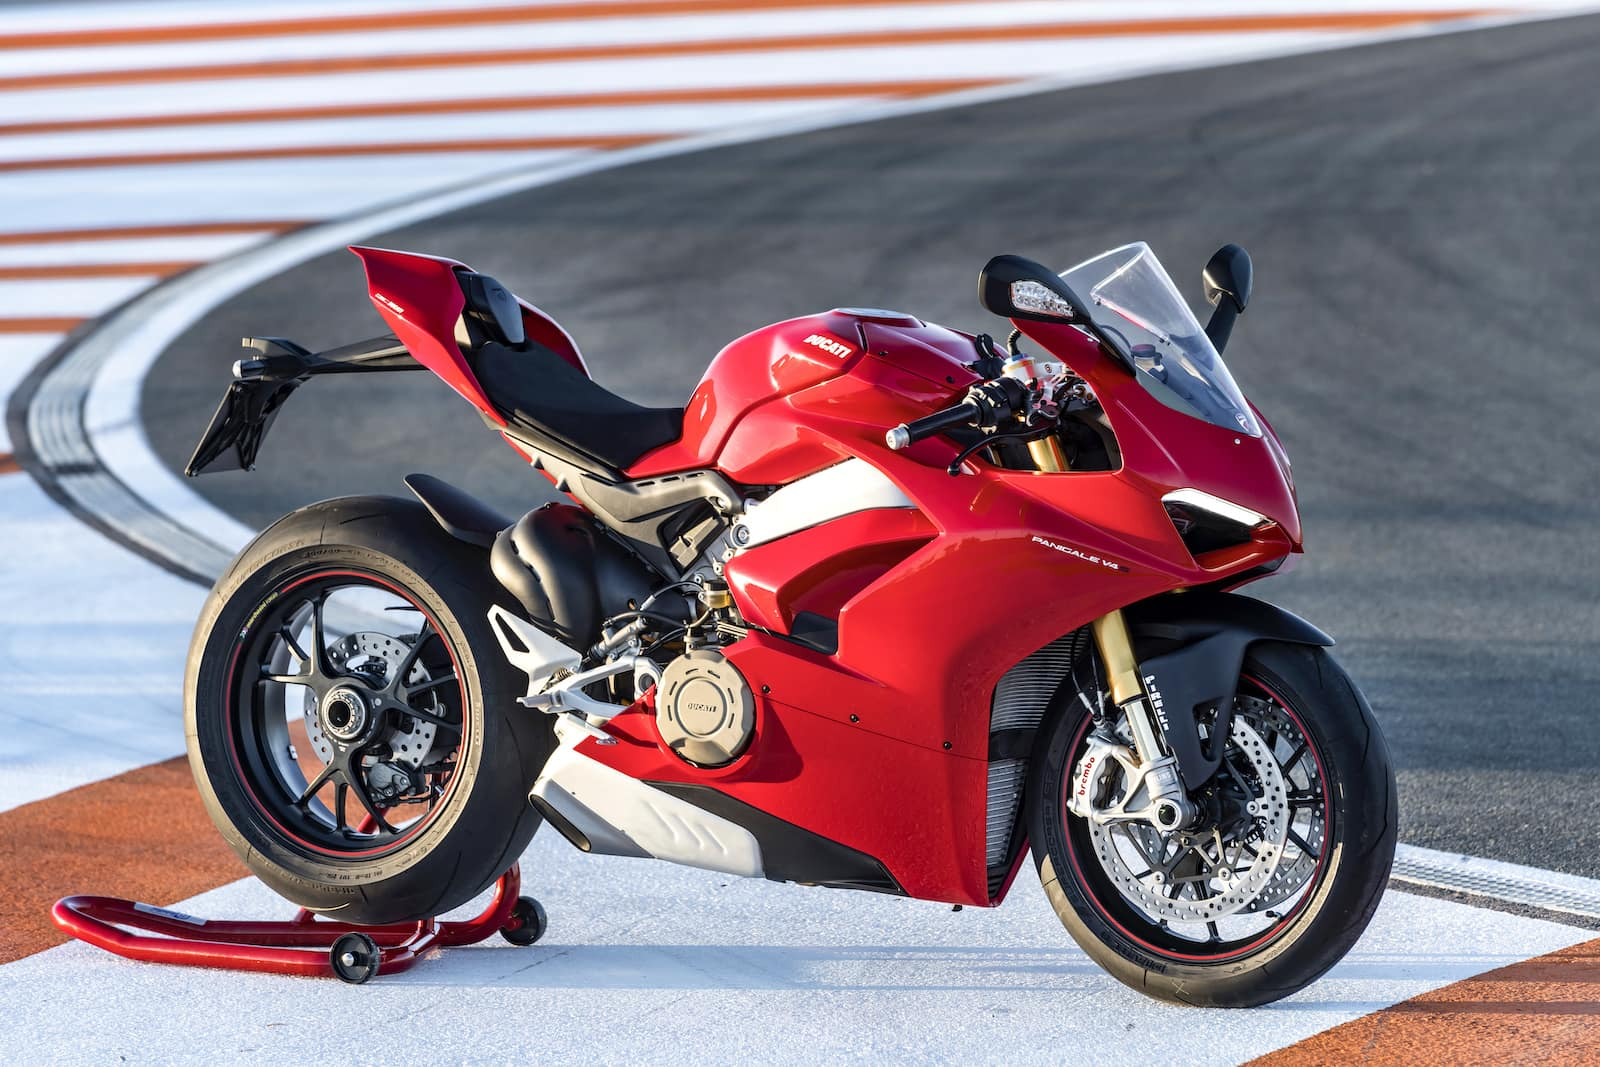 The Ducati Panigale V4 - an attractive 2019 motorcycle